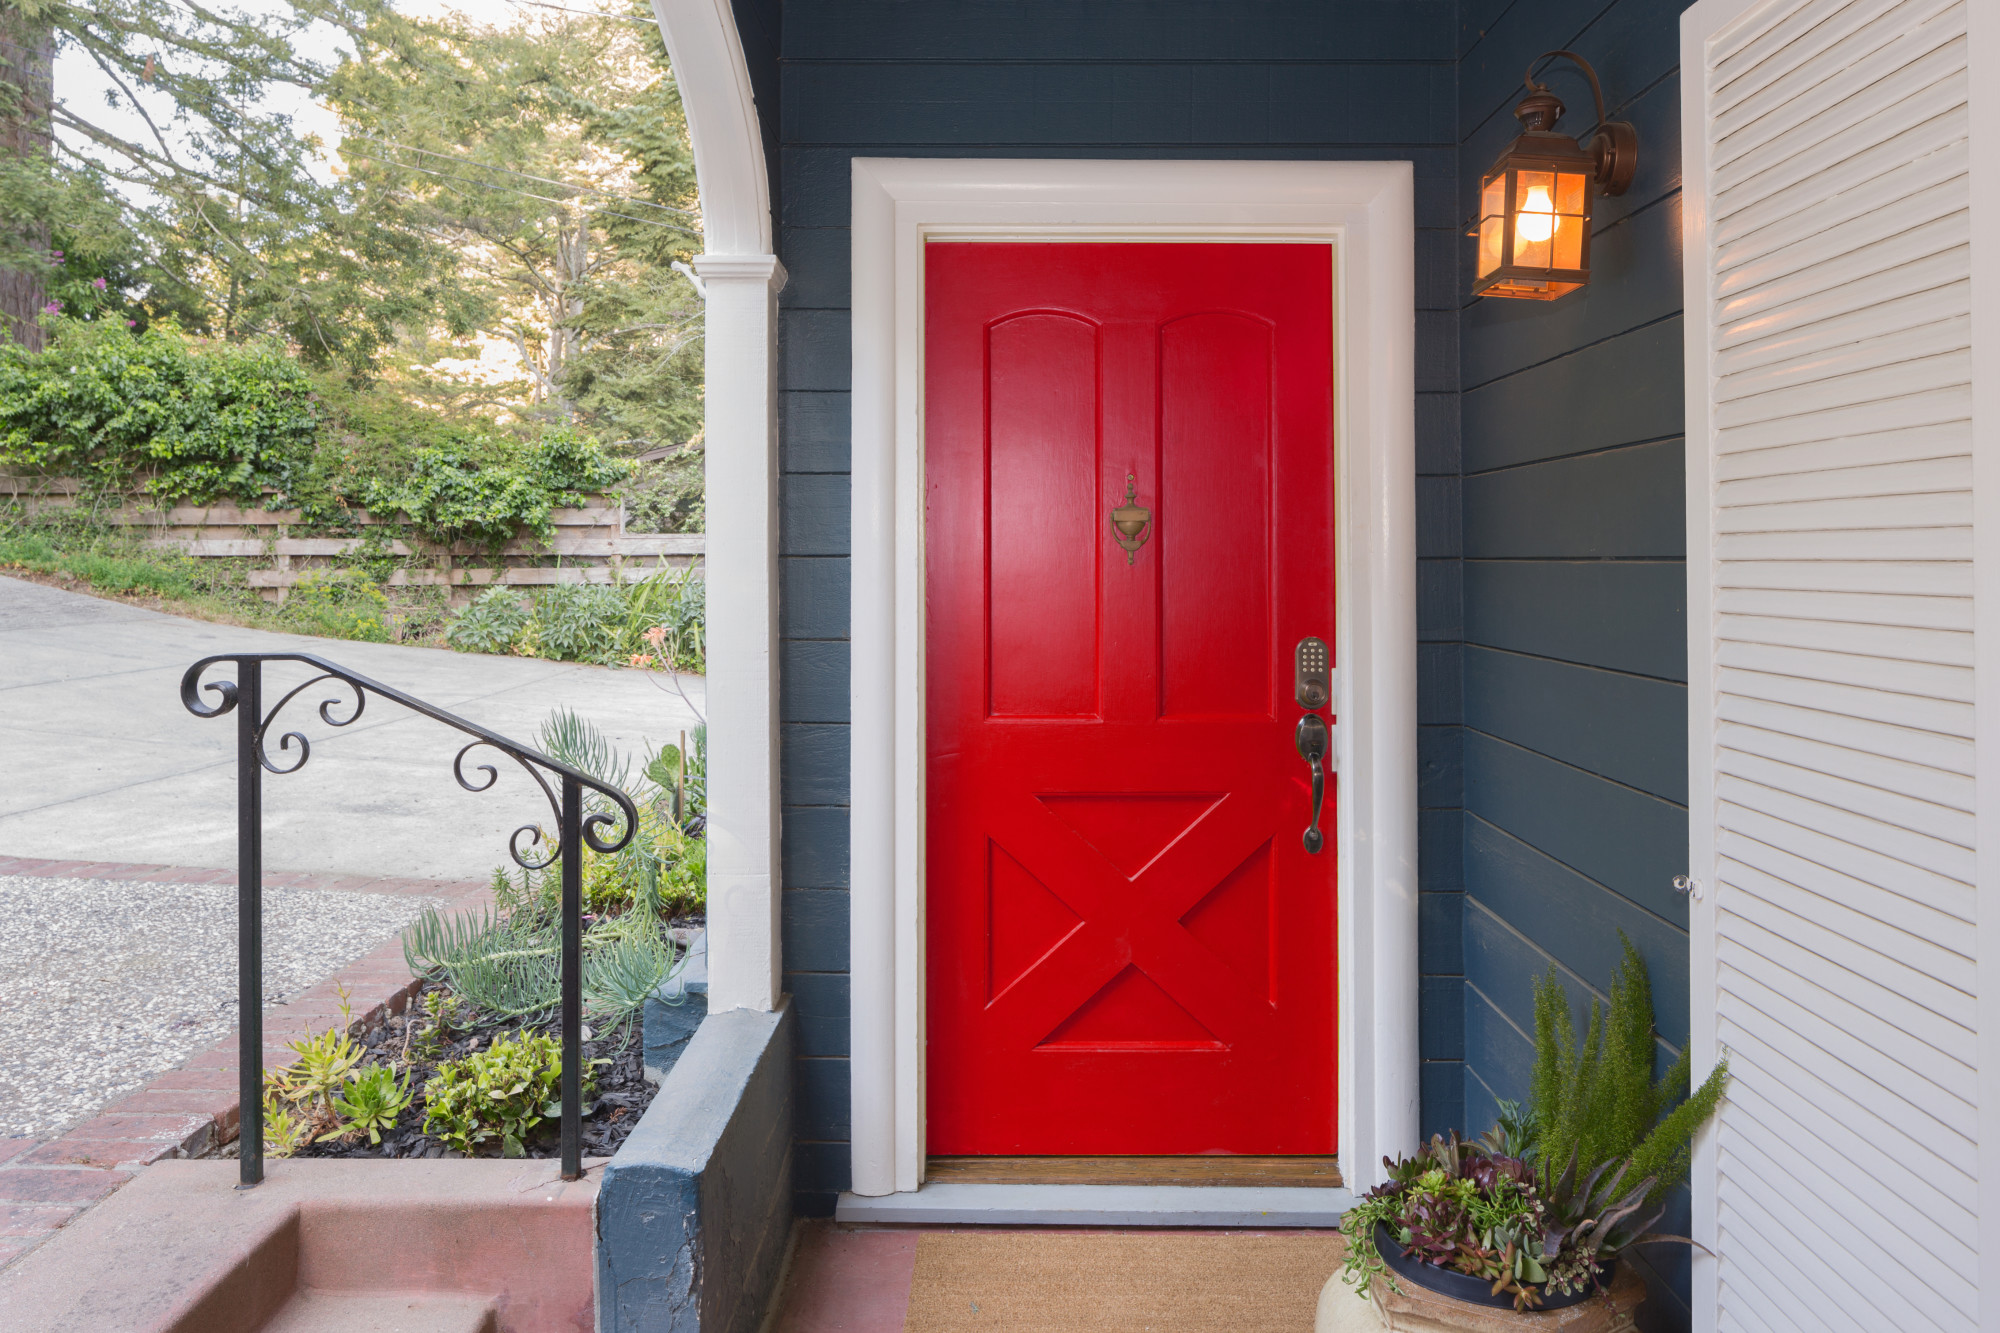 A Helpful Guide on How to Choose and Buy a New Front Door for a Home